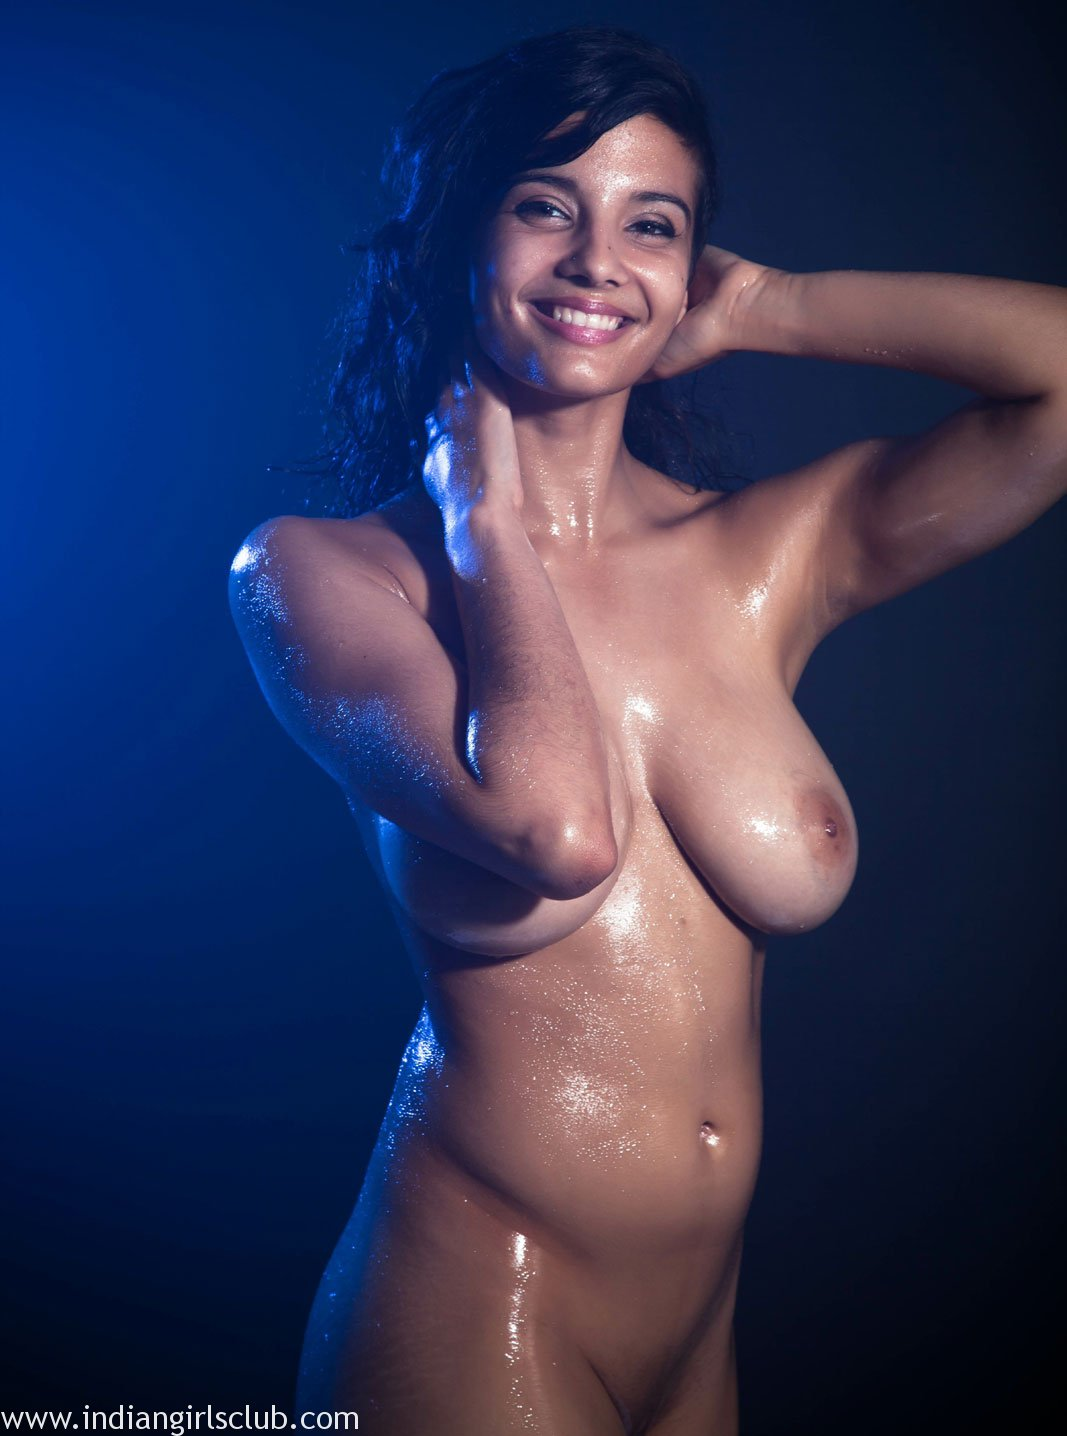 indian adult girl nude